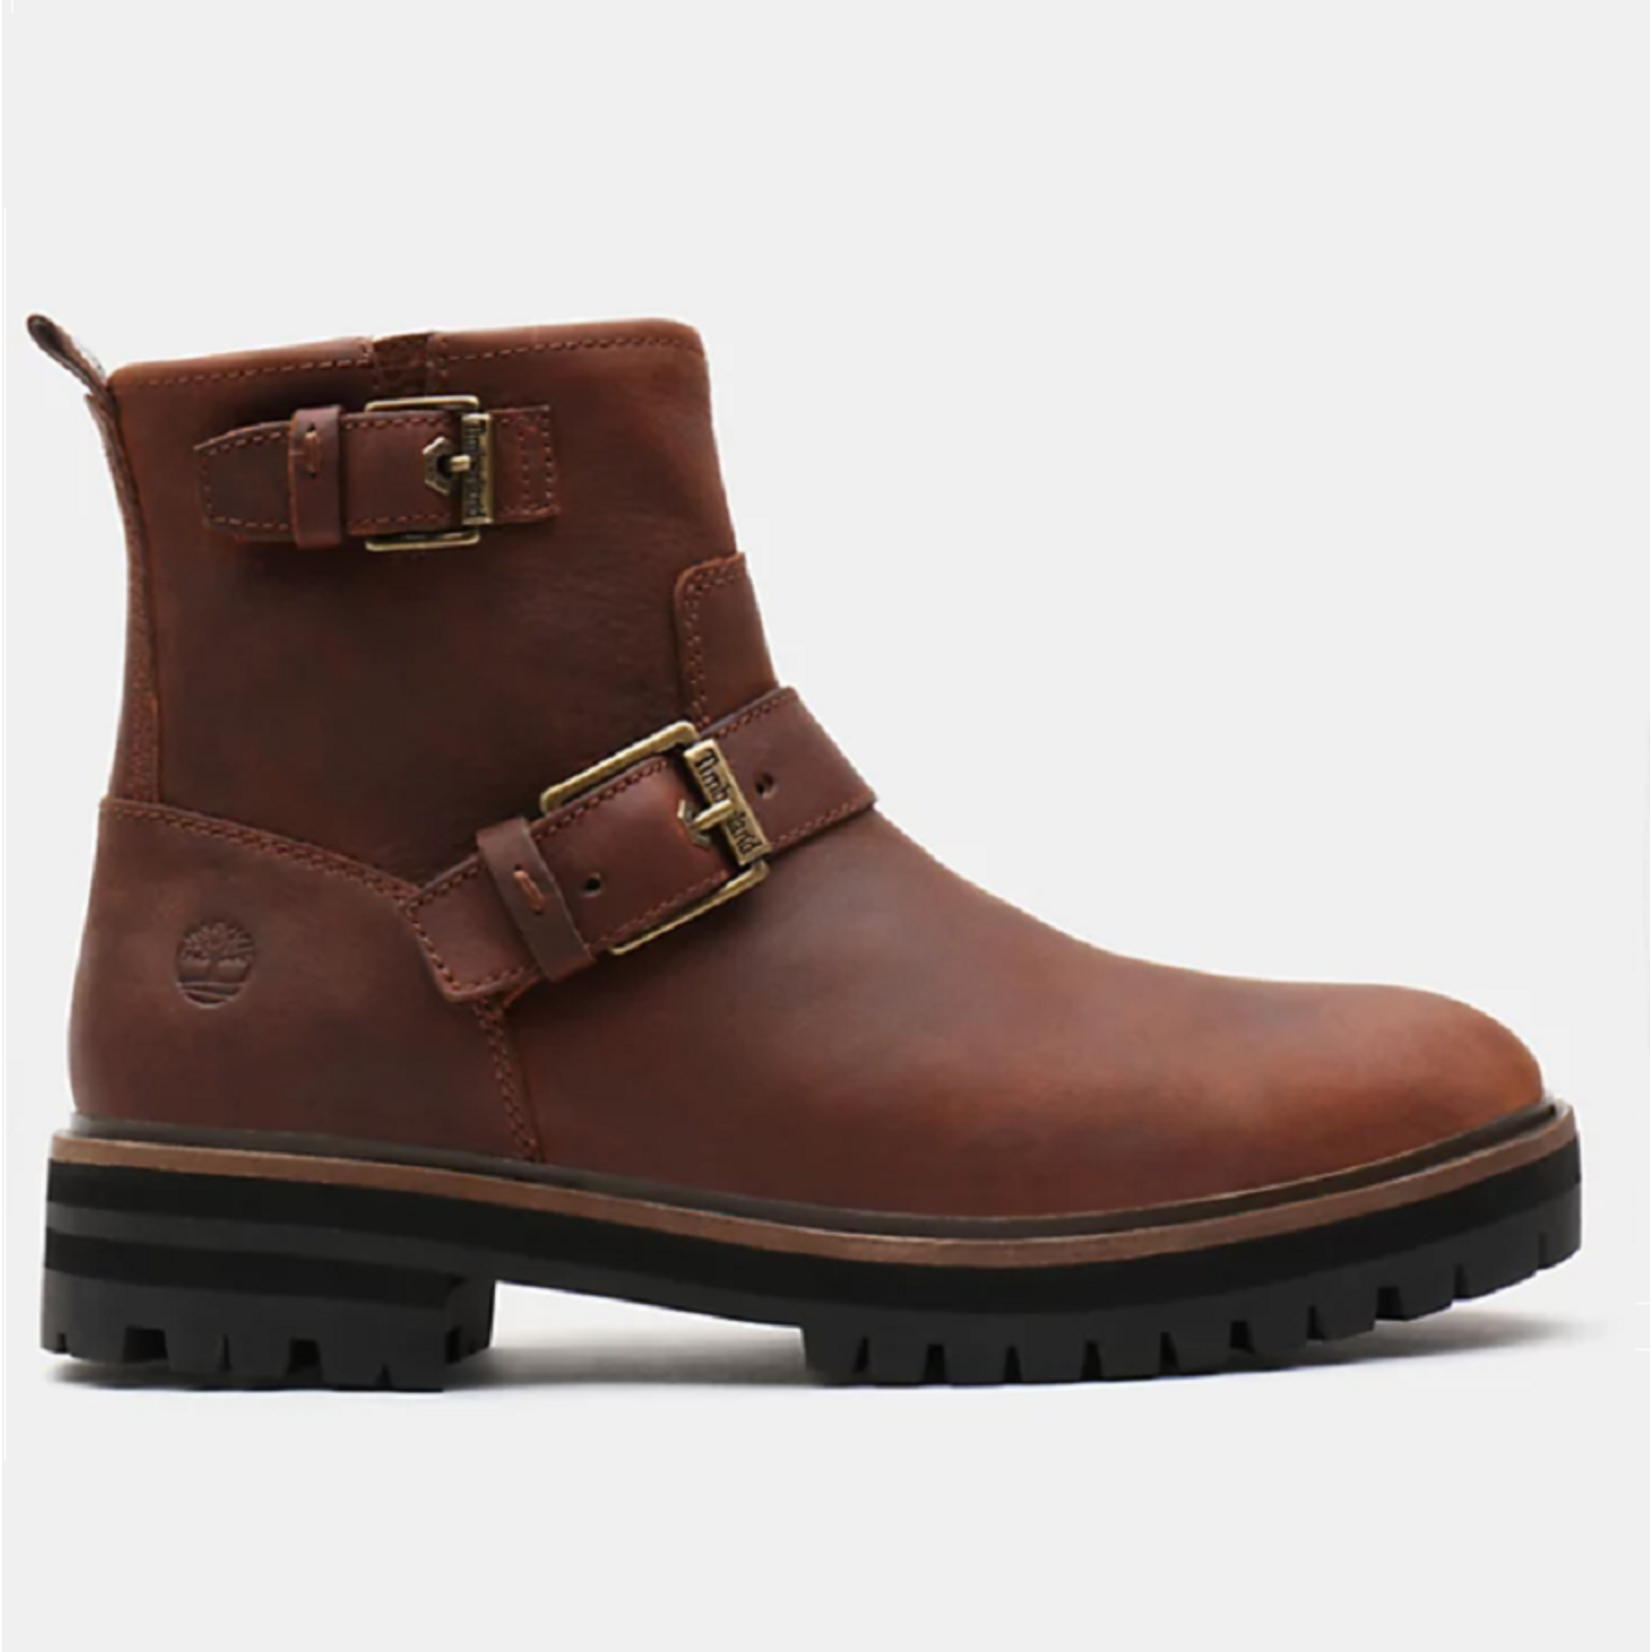 Timberland LONDON SQUARE BIKER BOOT FOR WOMEN IN BROWN